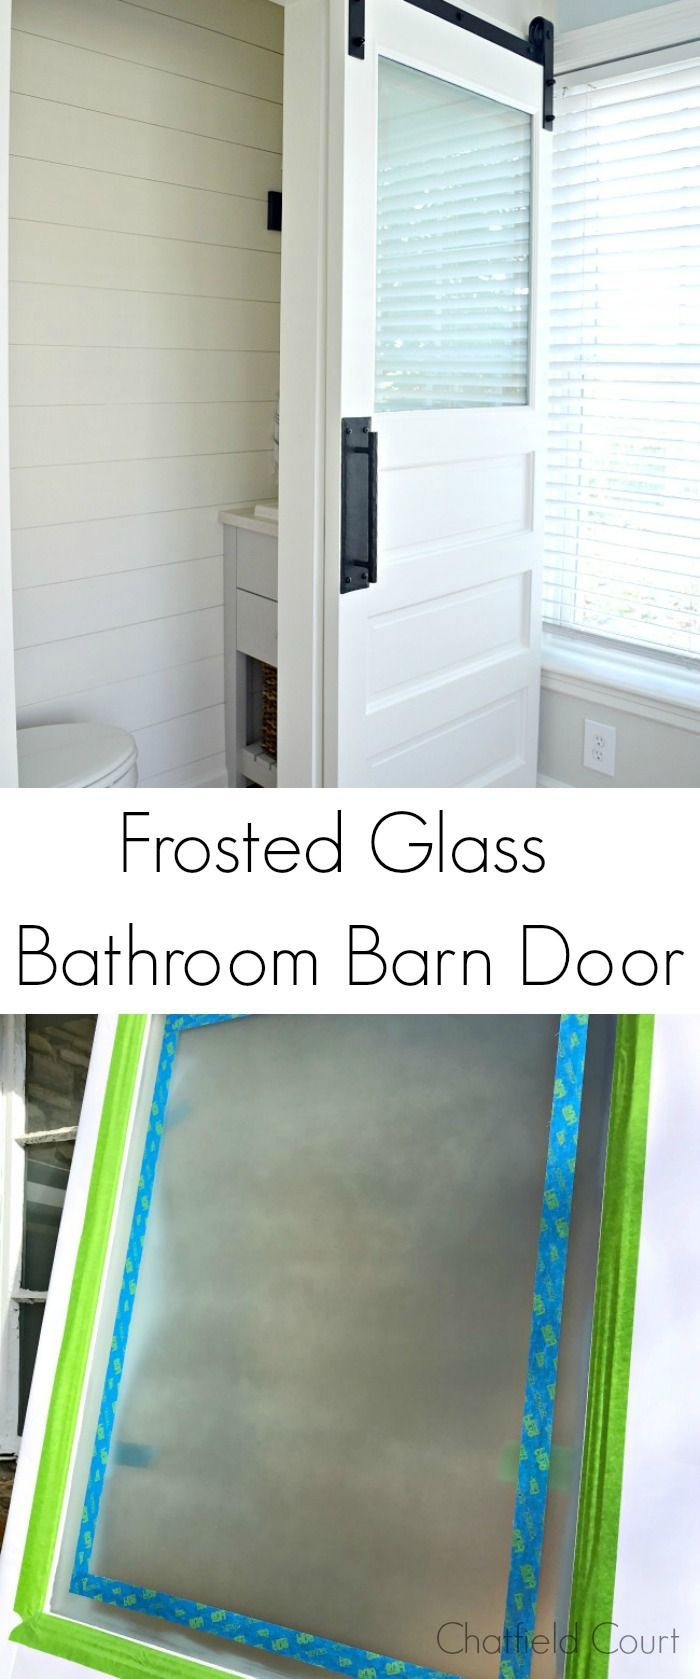 Frosted Glass Bathroom Barn Door – From Epic Fail to Success #diy ...